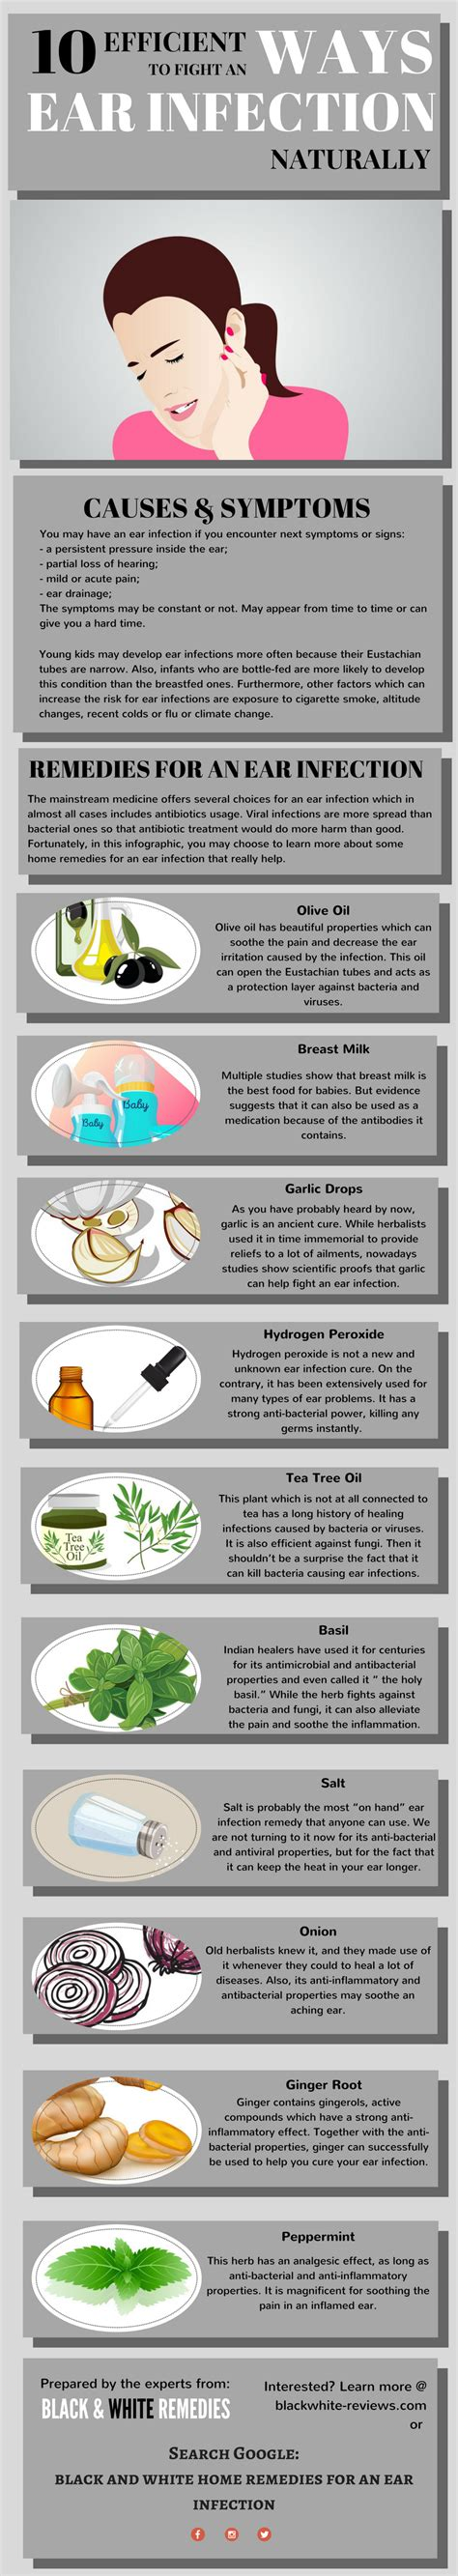 ear infection home remedies stylish home remedy for ear infection collection home gallery image and wallpaper